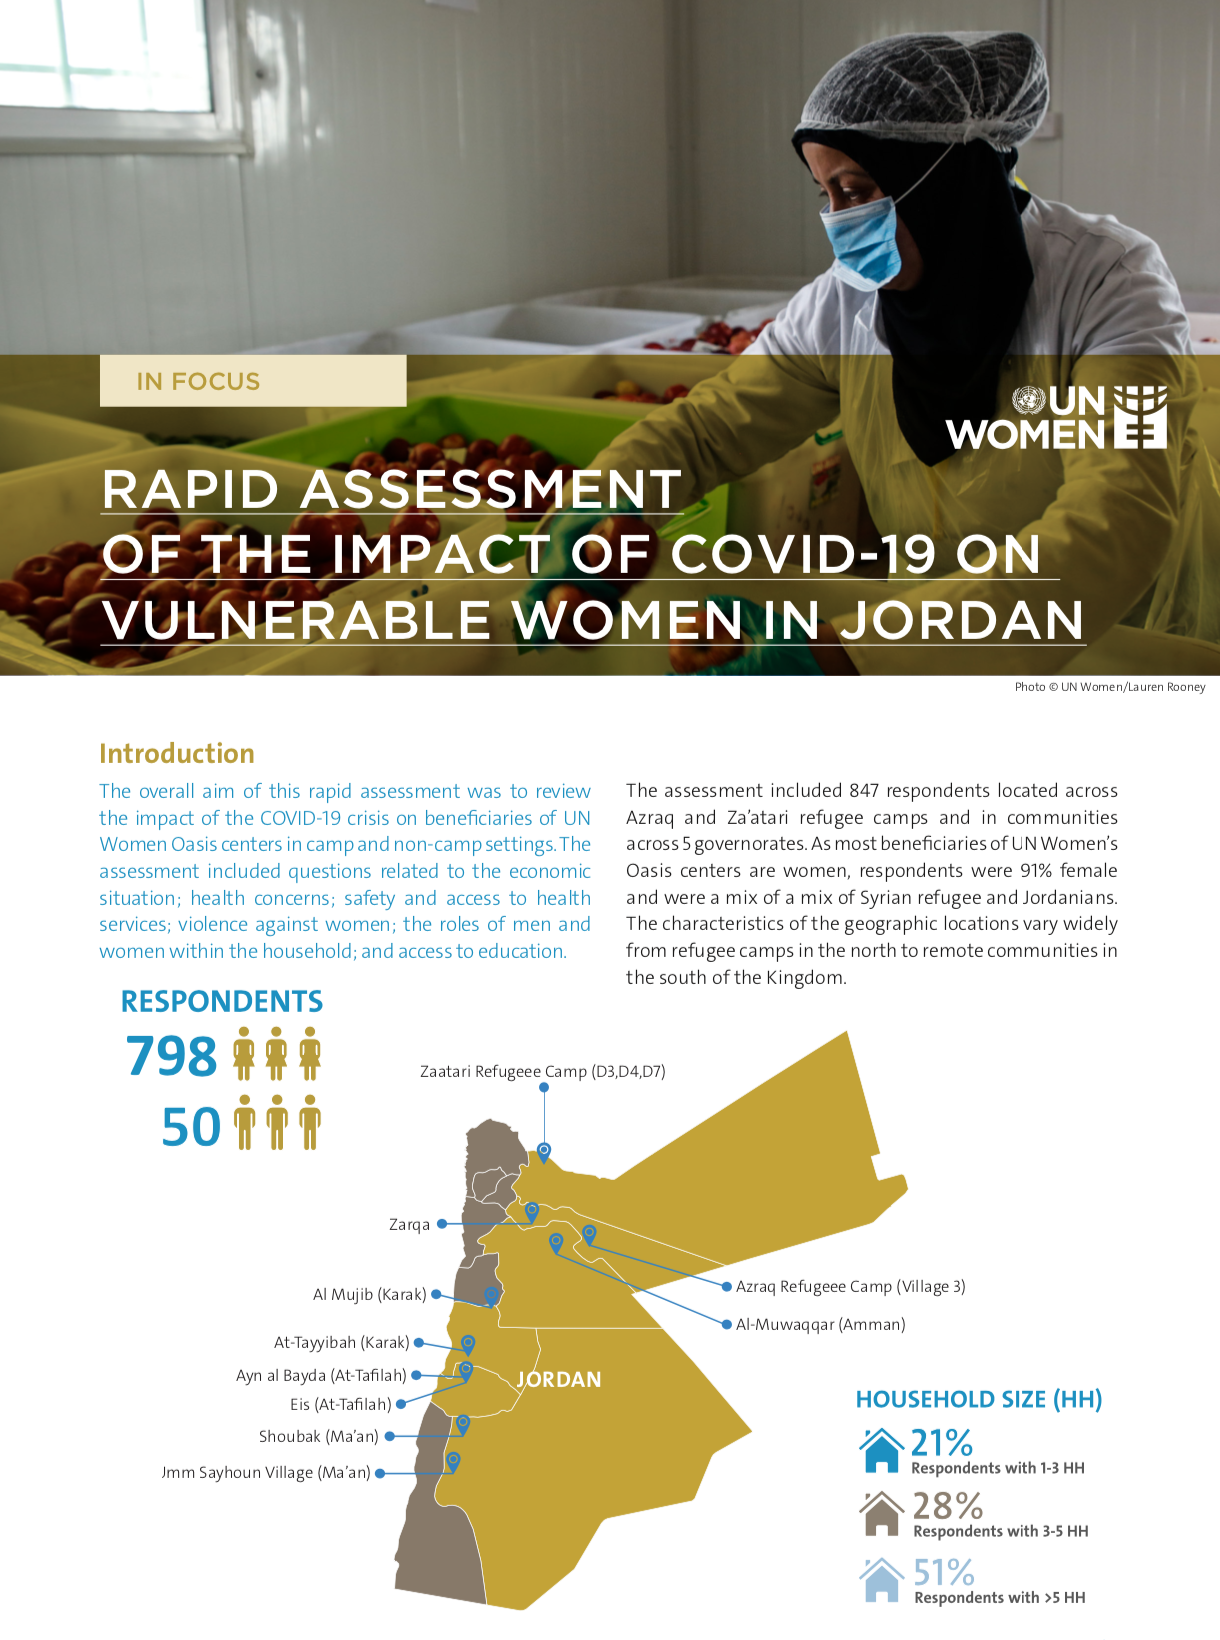 RAPID ASSESSMENT OF THE IMPACT OF COVID-19 ON VULNERABLE WOMEN IN JORDAN